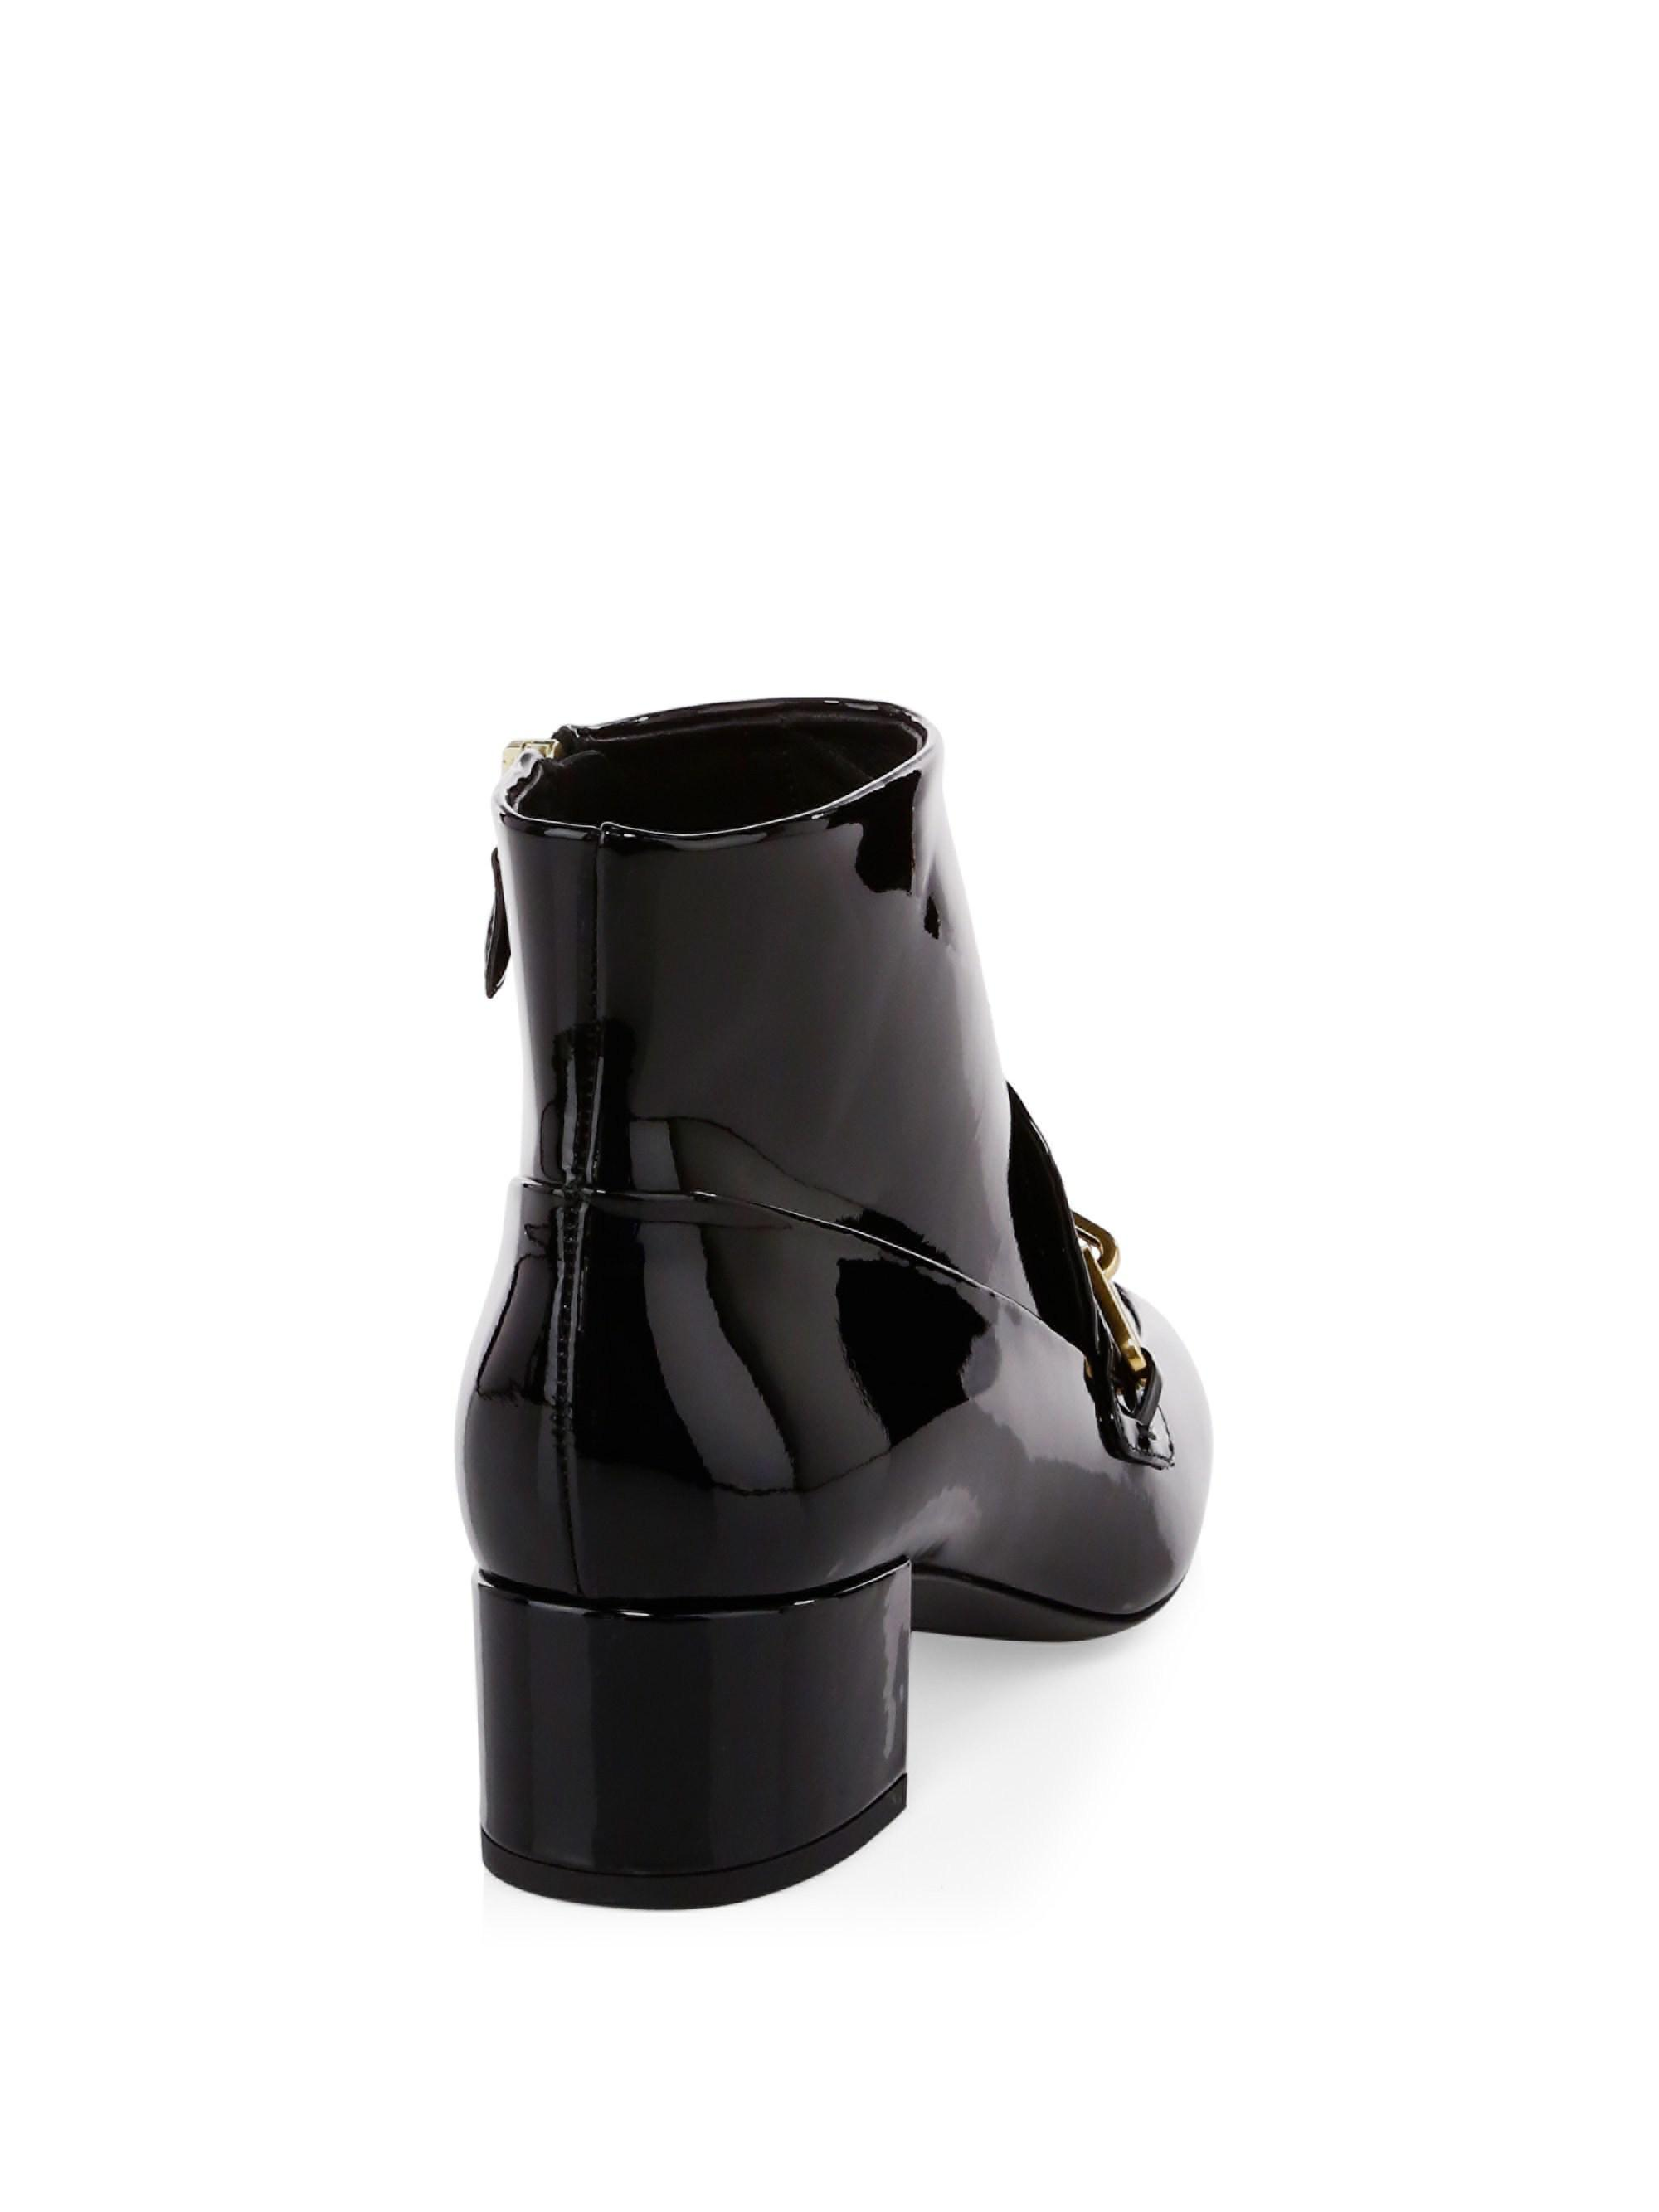 4788533dcc5 Burberry Chain Patent Leather Ankle Boots in Black - Lyst